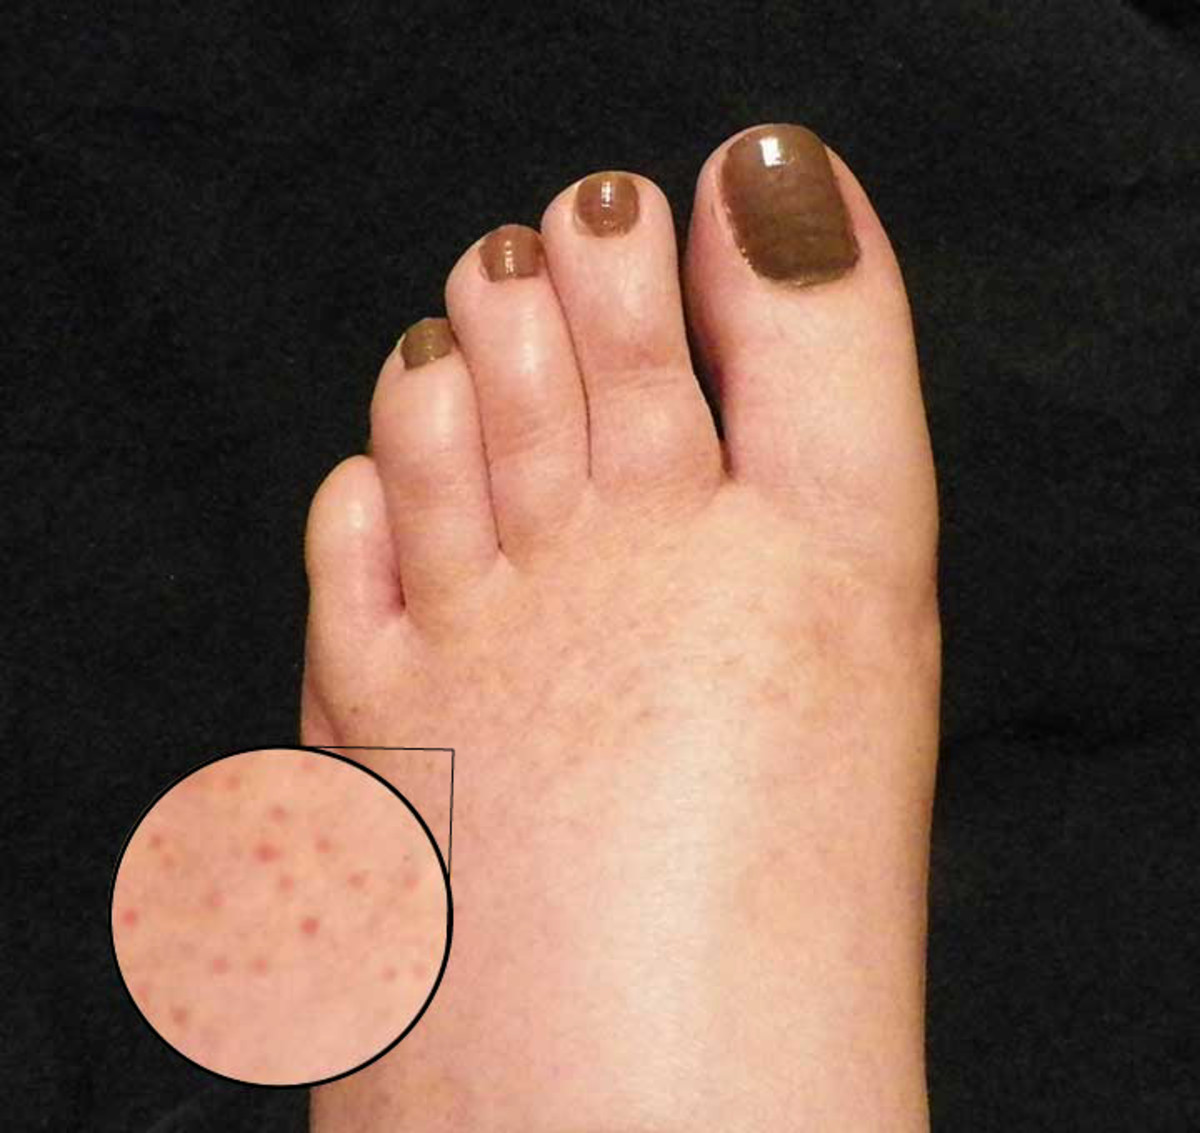 Causes of Red Dots on Feet